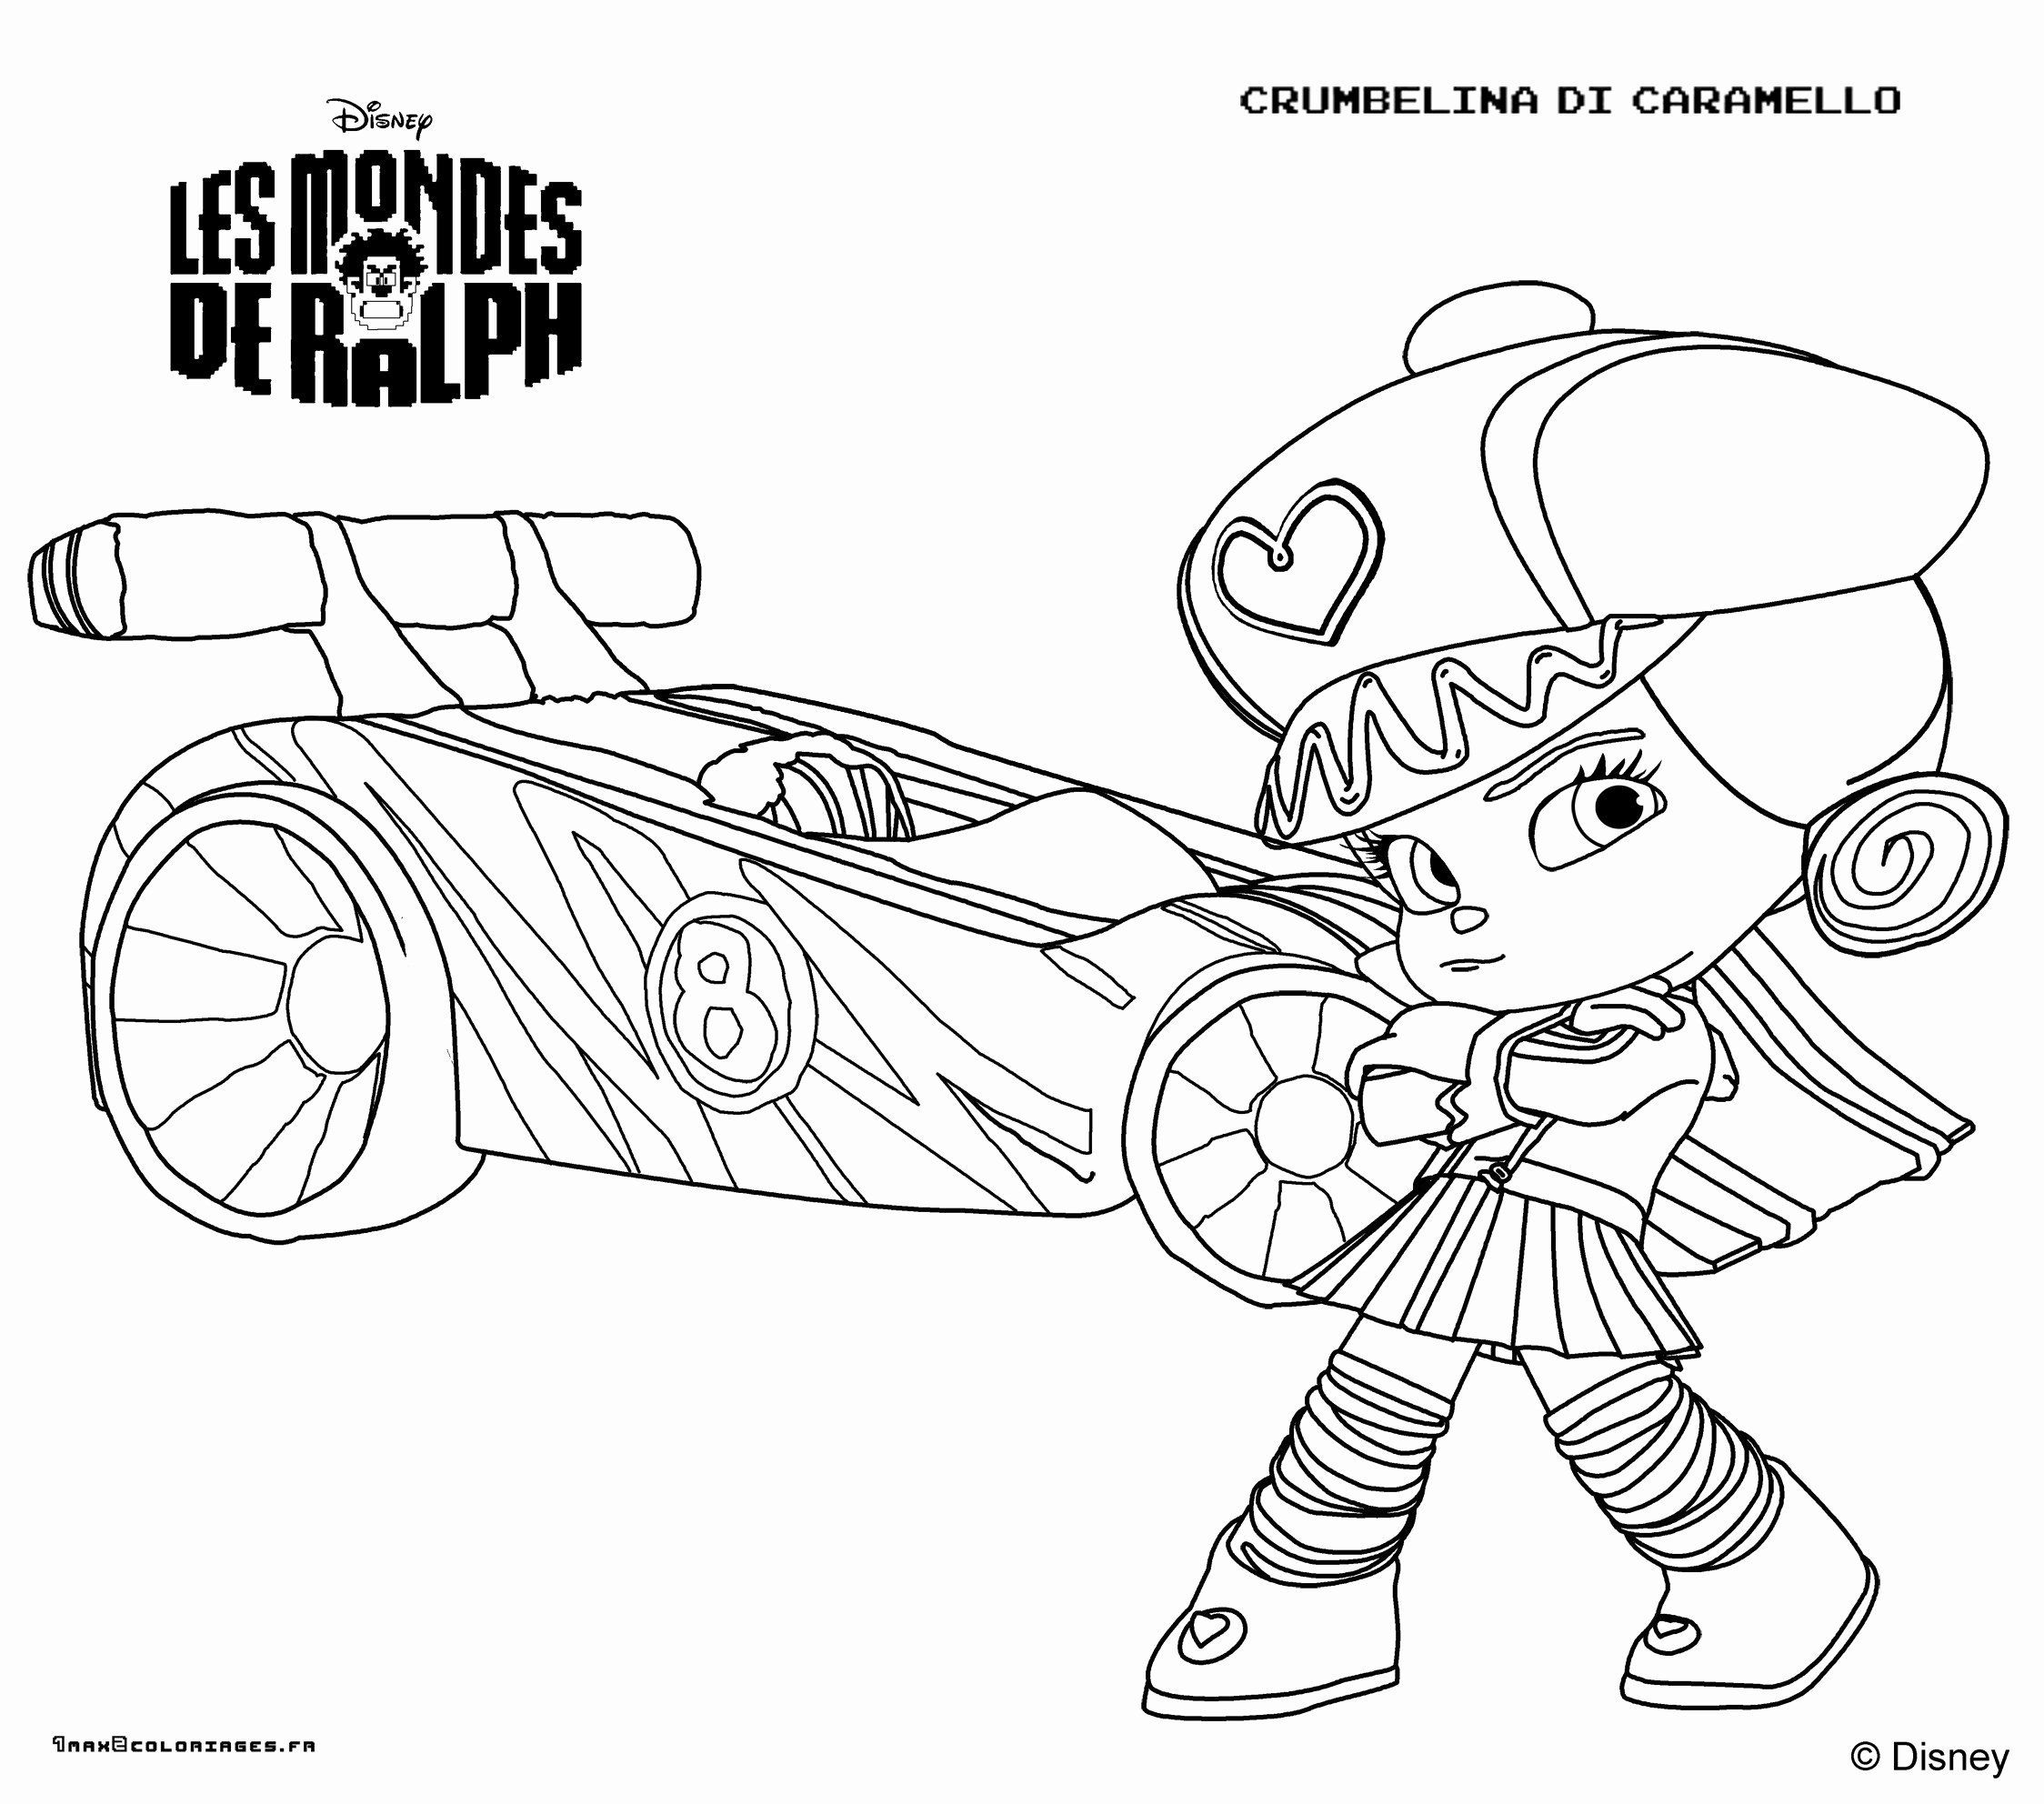 Coloring Pages For Adults Cartoons Inspirational Fresh Cartoon